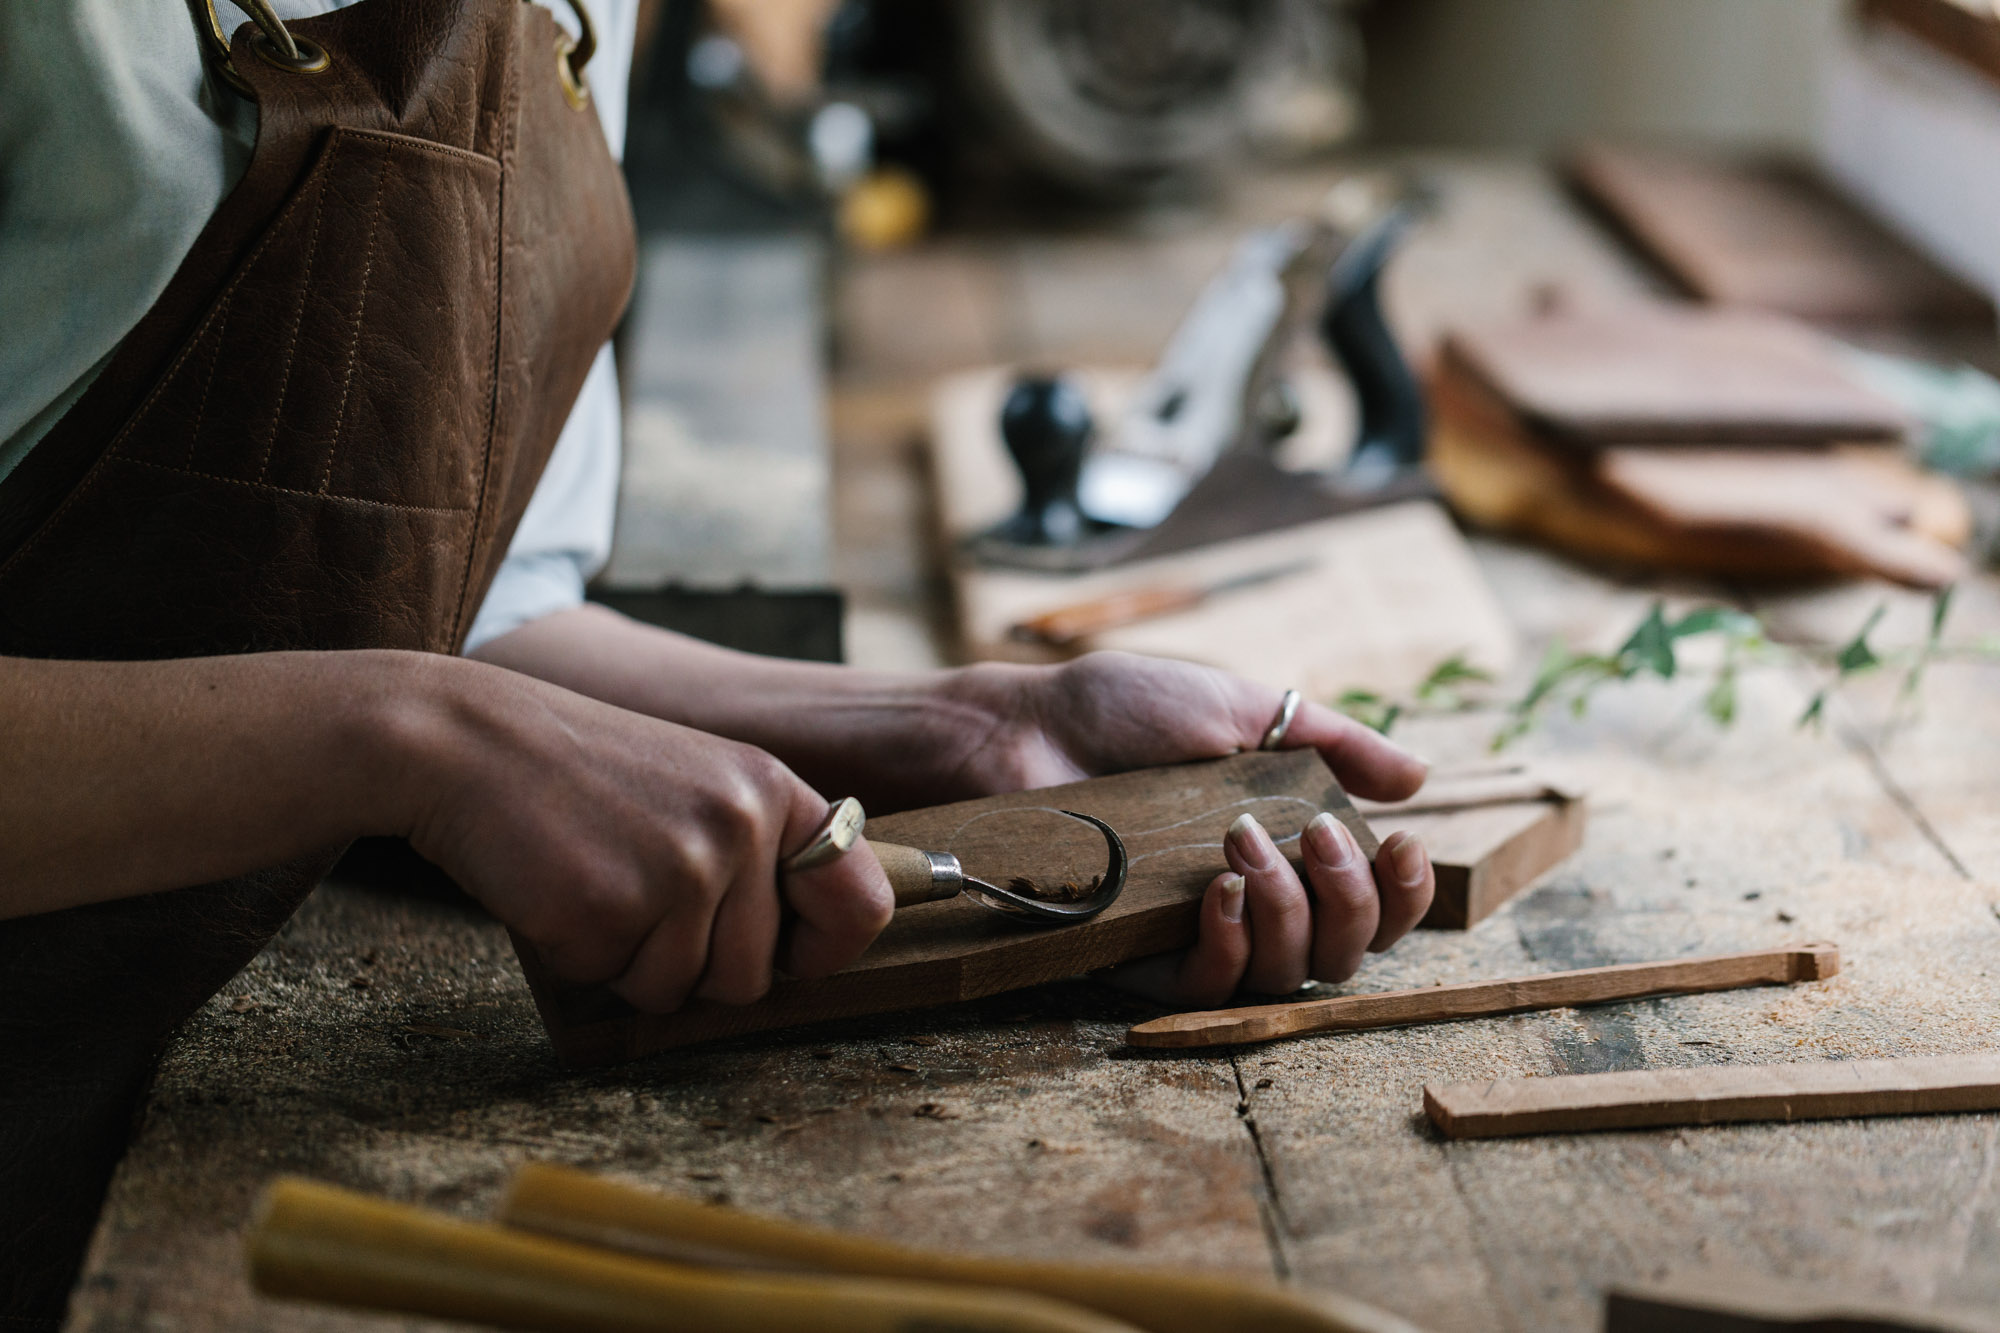 Marnie Hawson, Melbourne lifestyle photographer for The Muse and Tomorrow Agency: Erin Malloy, woodworker